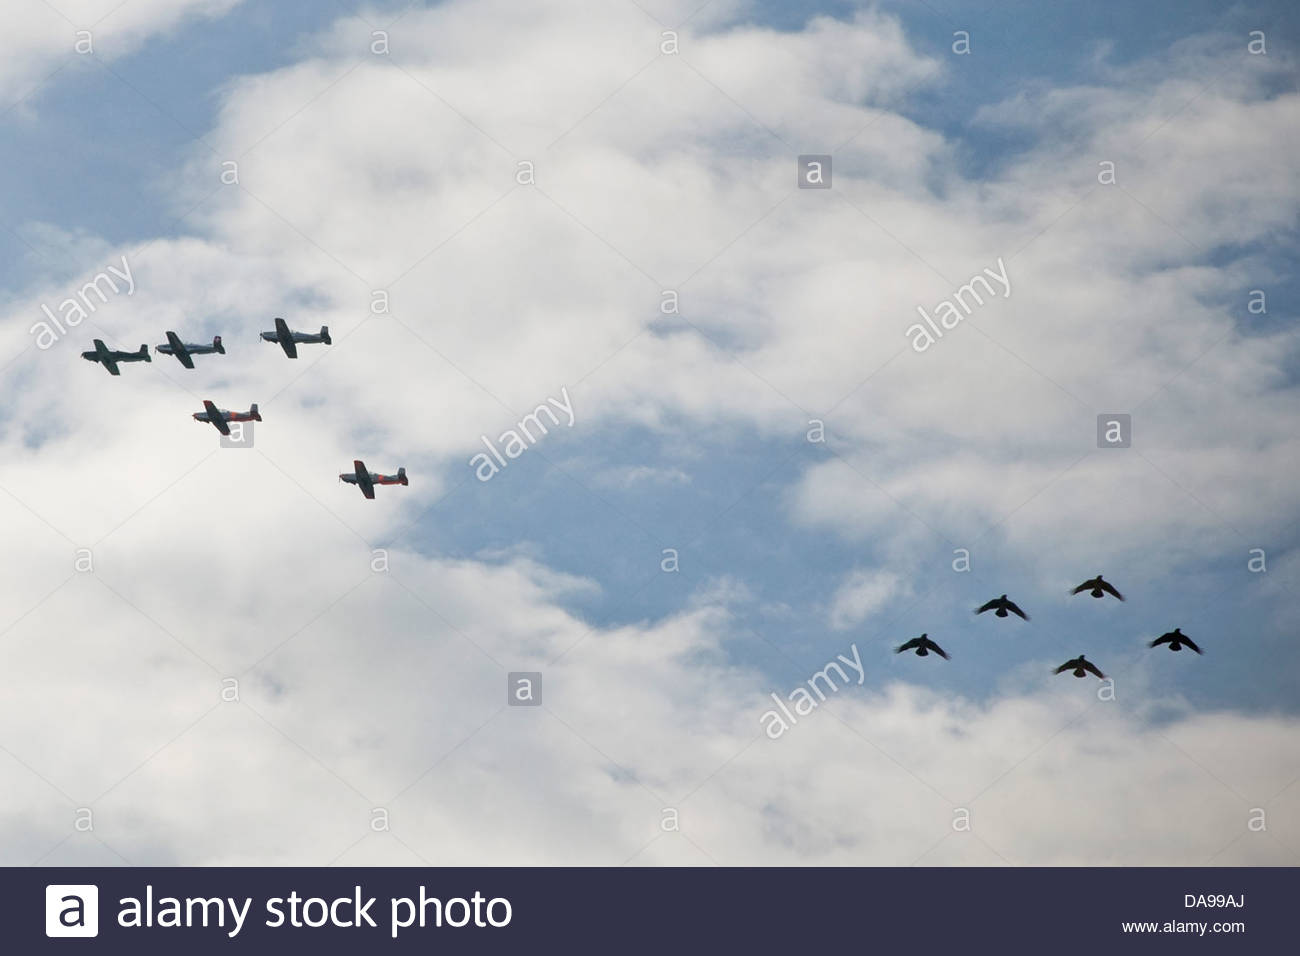 Airplanes and birds - Stock Image